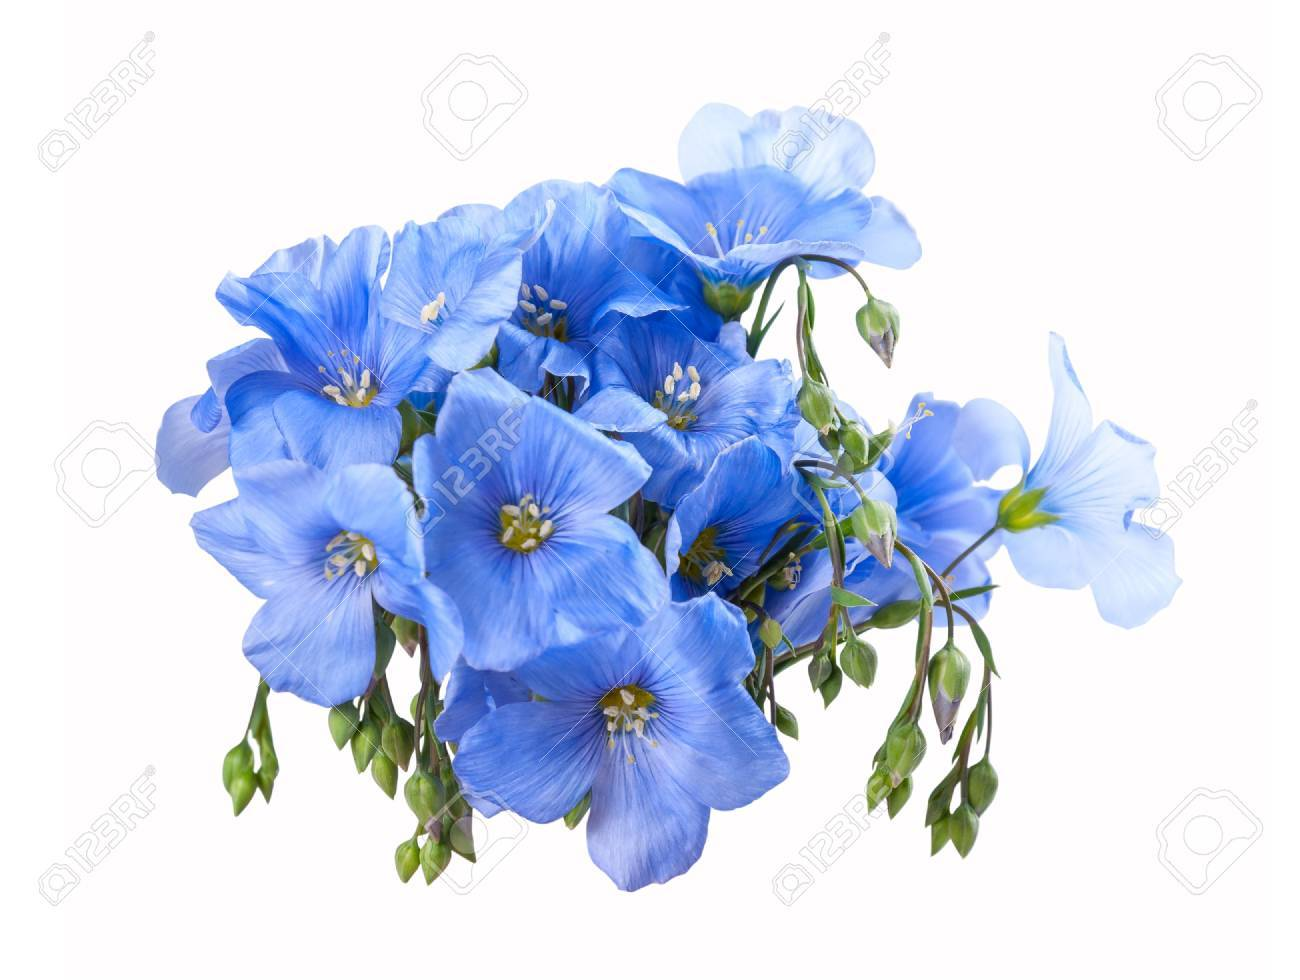 Blue Flax Flowers Isolated On A White Background, For Design Stock ...